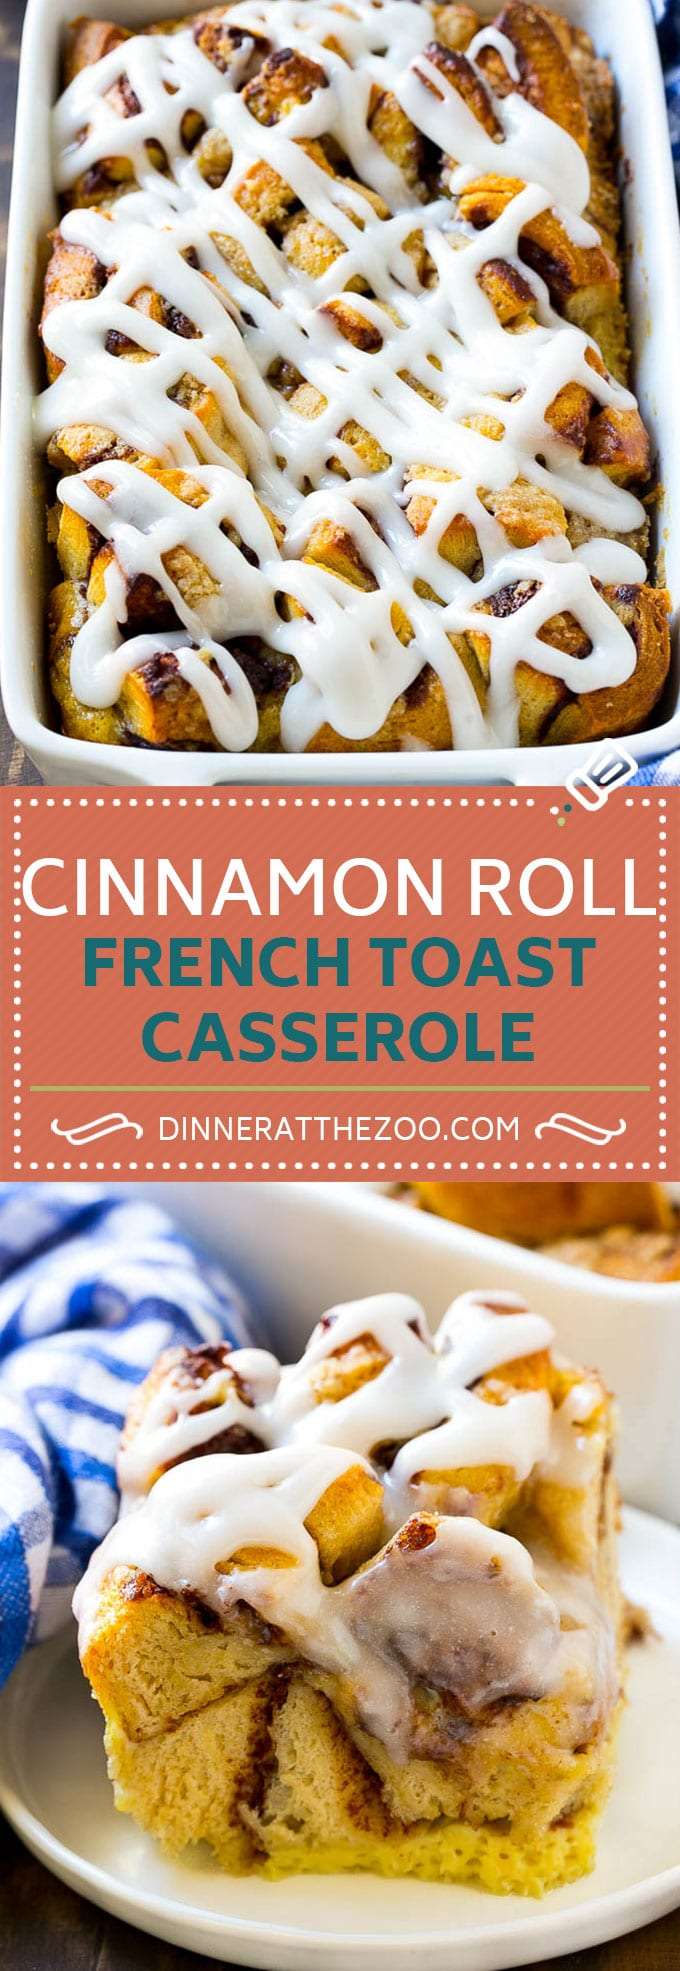 Cinnamon Roll French Toast Casserole | Cinnamon Roll French Toast Bake | Cinnamon Roll French Toast | Cinnamon French Toast #casserole #frenchtoast #cinnamonrolls #breakfast #dinneratthezoo